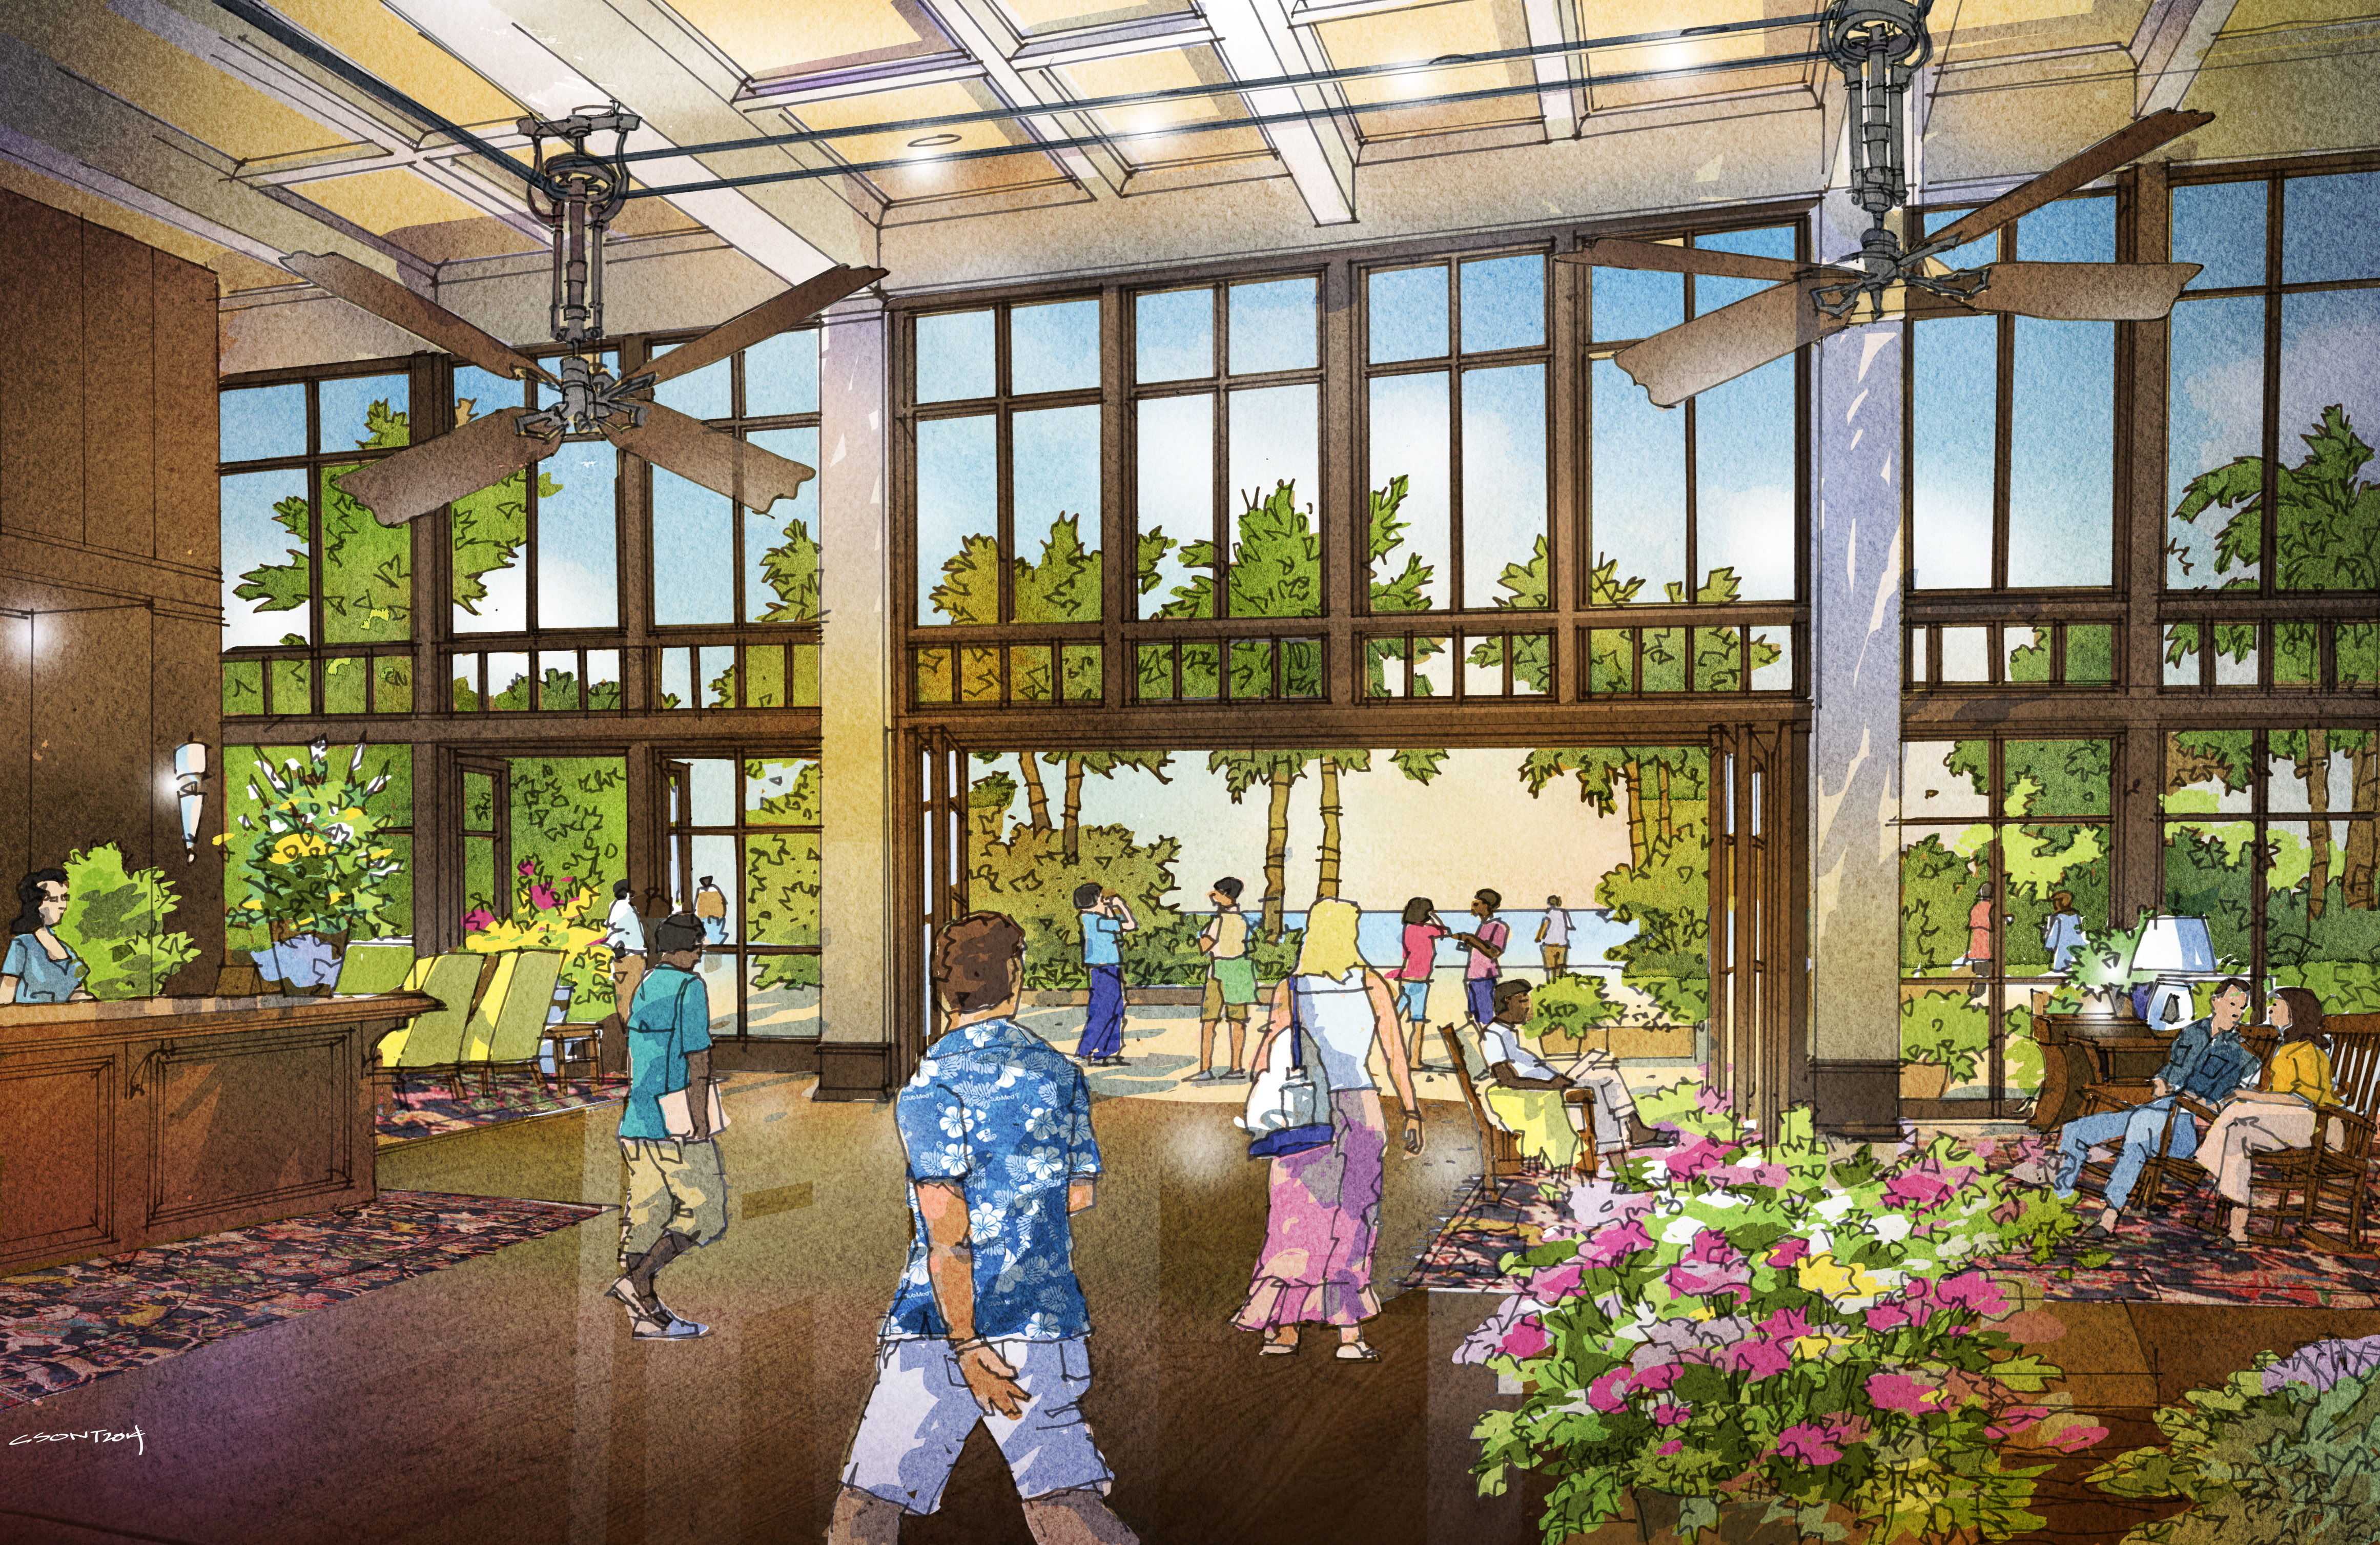 An illustration of a housing complex lobby with wood paneling and large windows, flowers and people